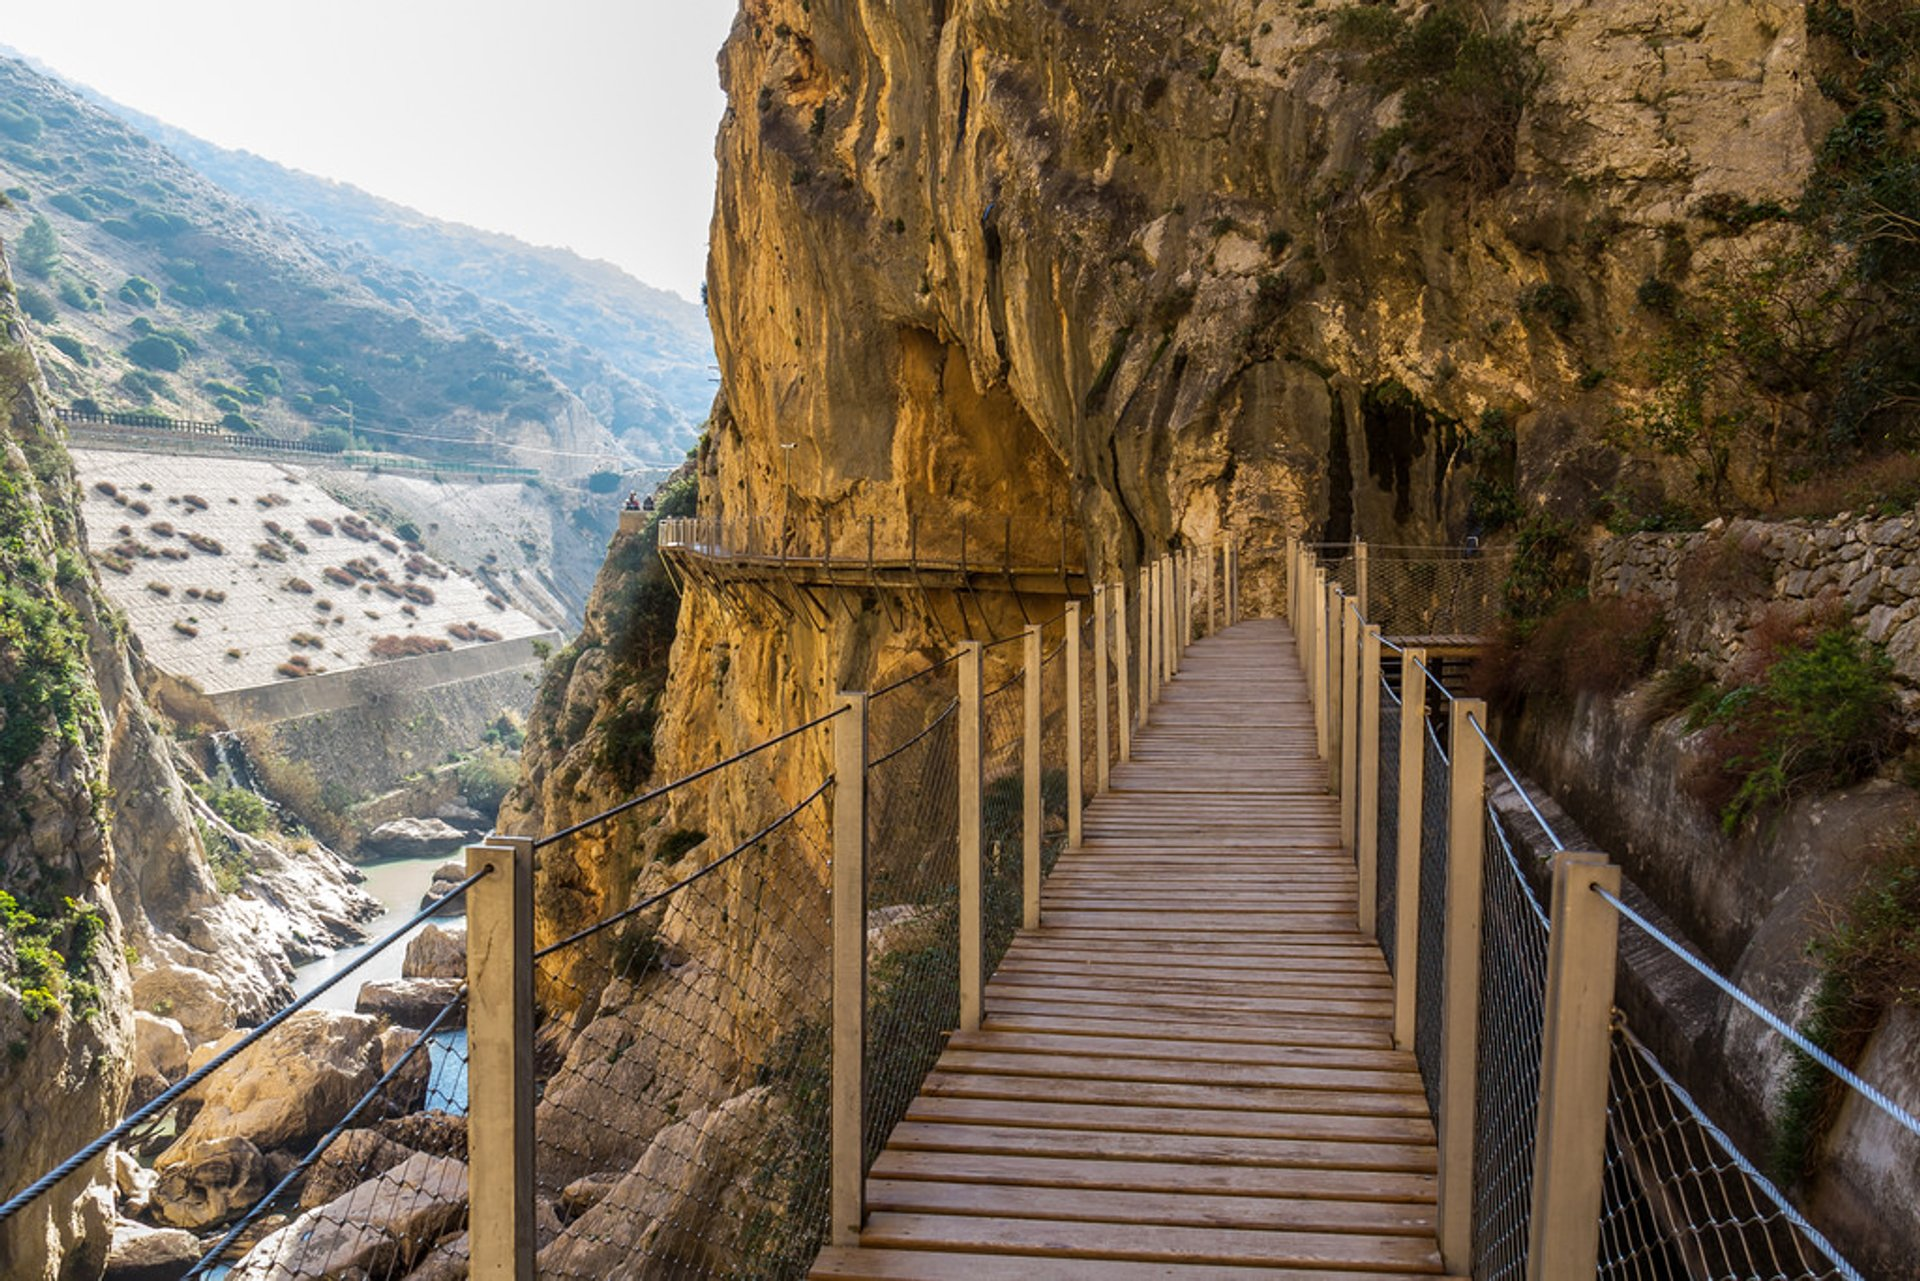 El Caminito Del Rey (King's Path) in Spain 2020 - Best Time